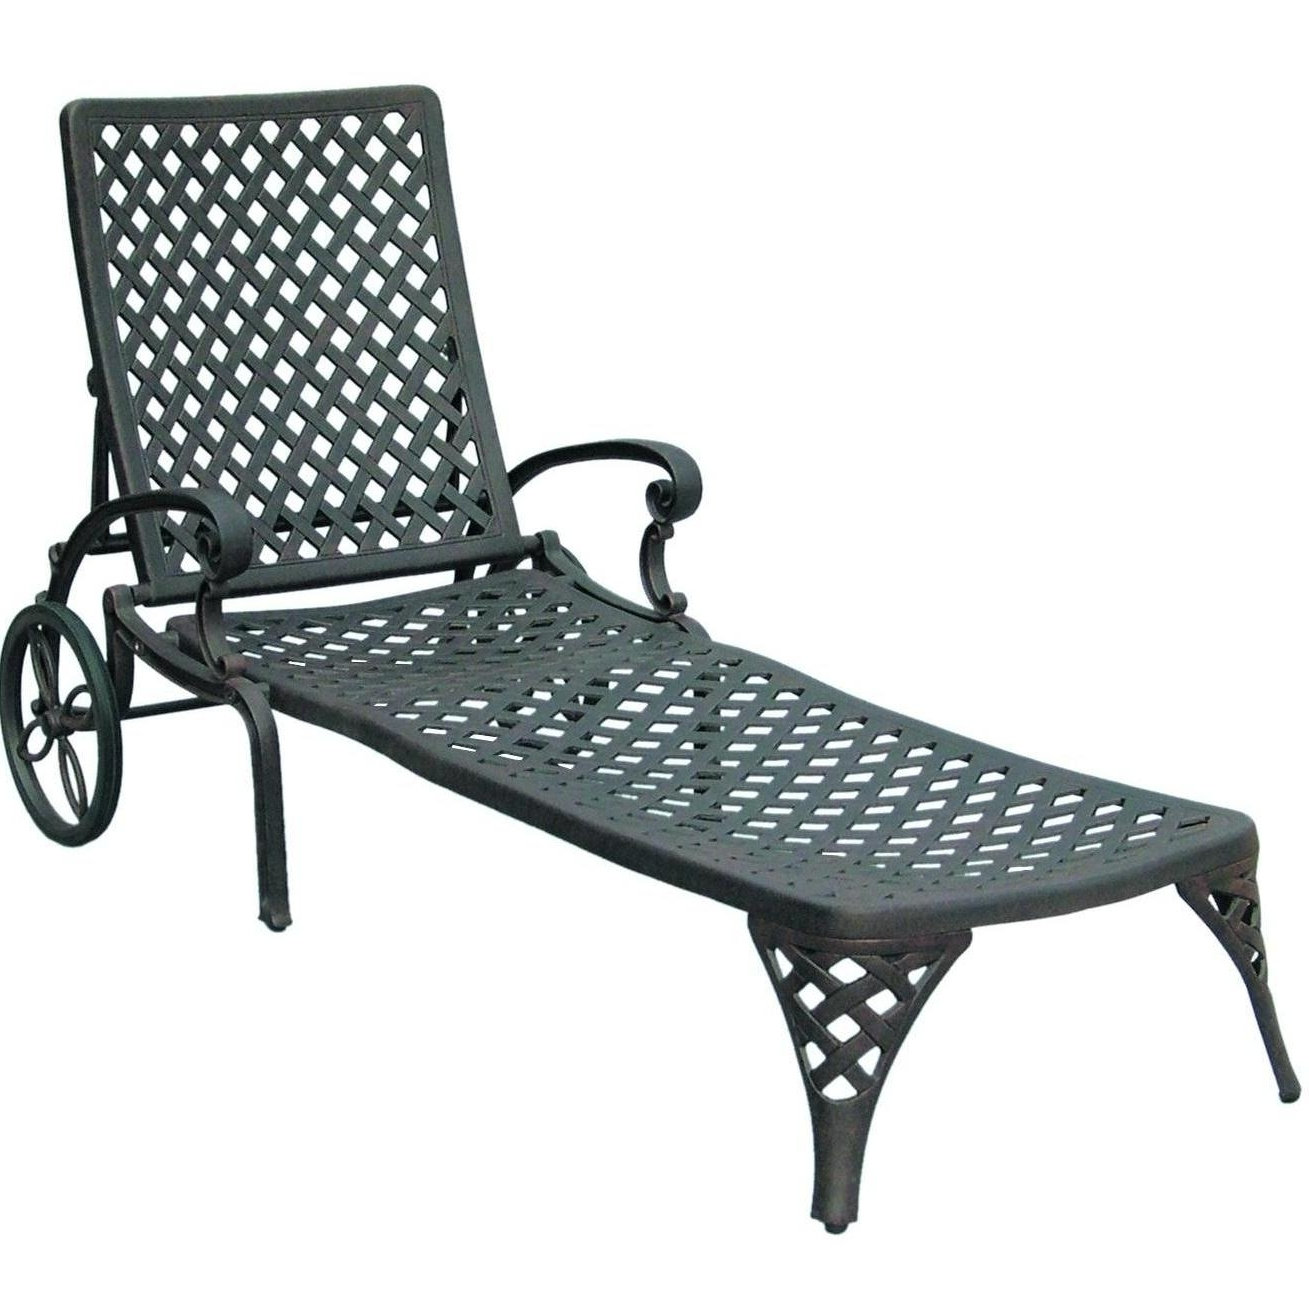 Aluminum Chaise Lounge Outdoor Chairs Pertaining To Widely Used Darlee Nassau Cast Aluminum Patio Chaise Lounge : Ultimate Patio (View 9 of 15)